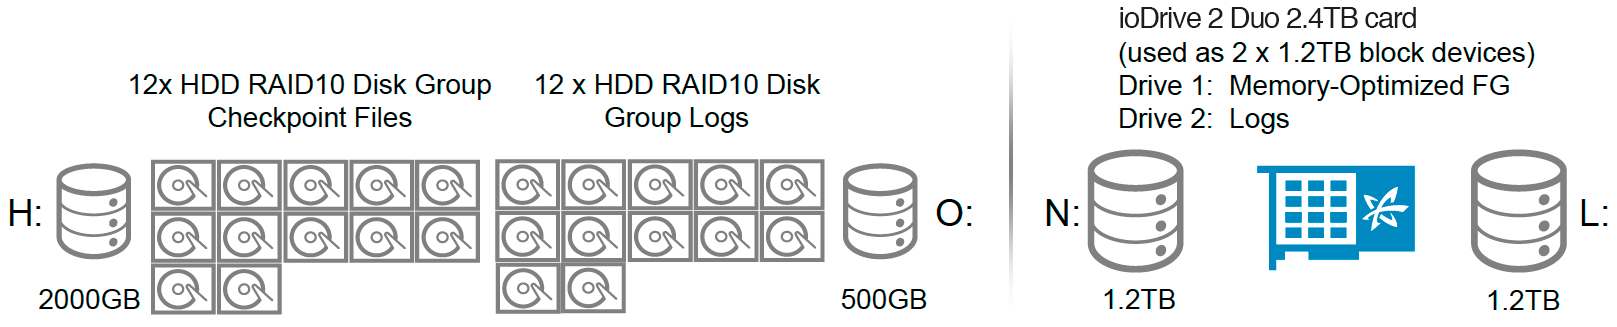 Figure 1. Storage layout of enterprise class disk array and Fusion iomemory iodrive2 Duo 2.4TB card. Note: Neither tempdb nor the disk-based tables were accessed during testing.